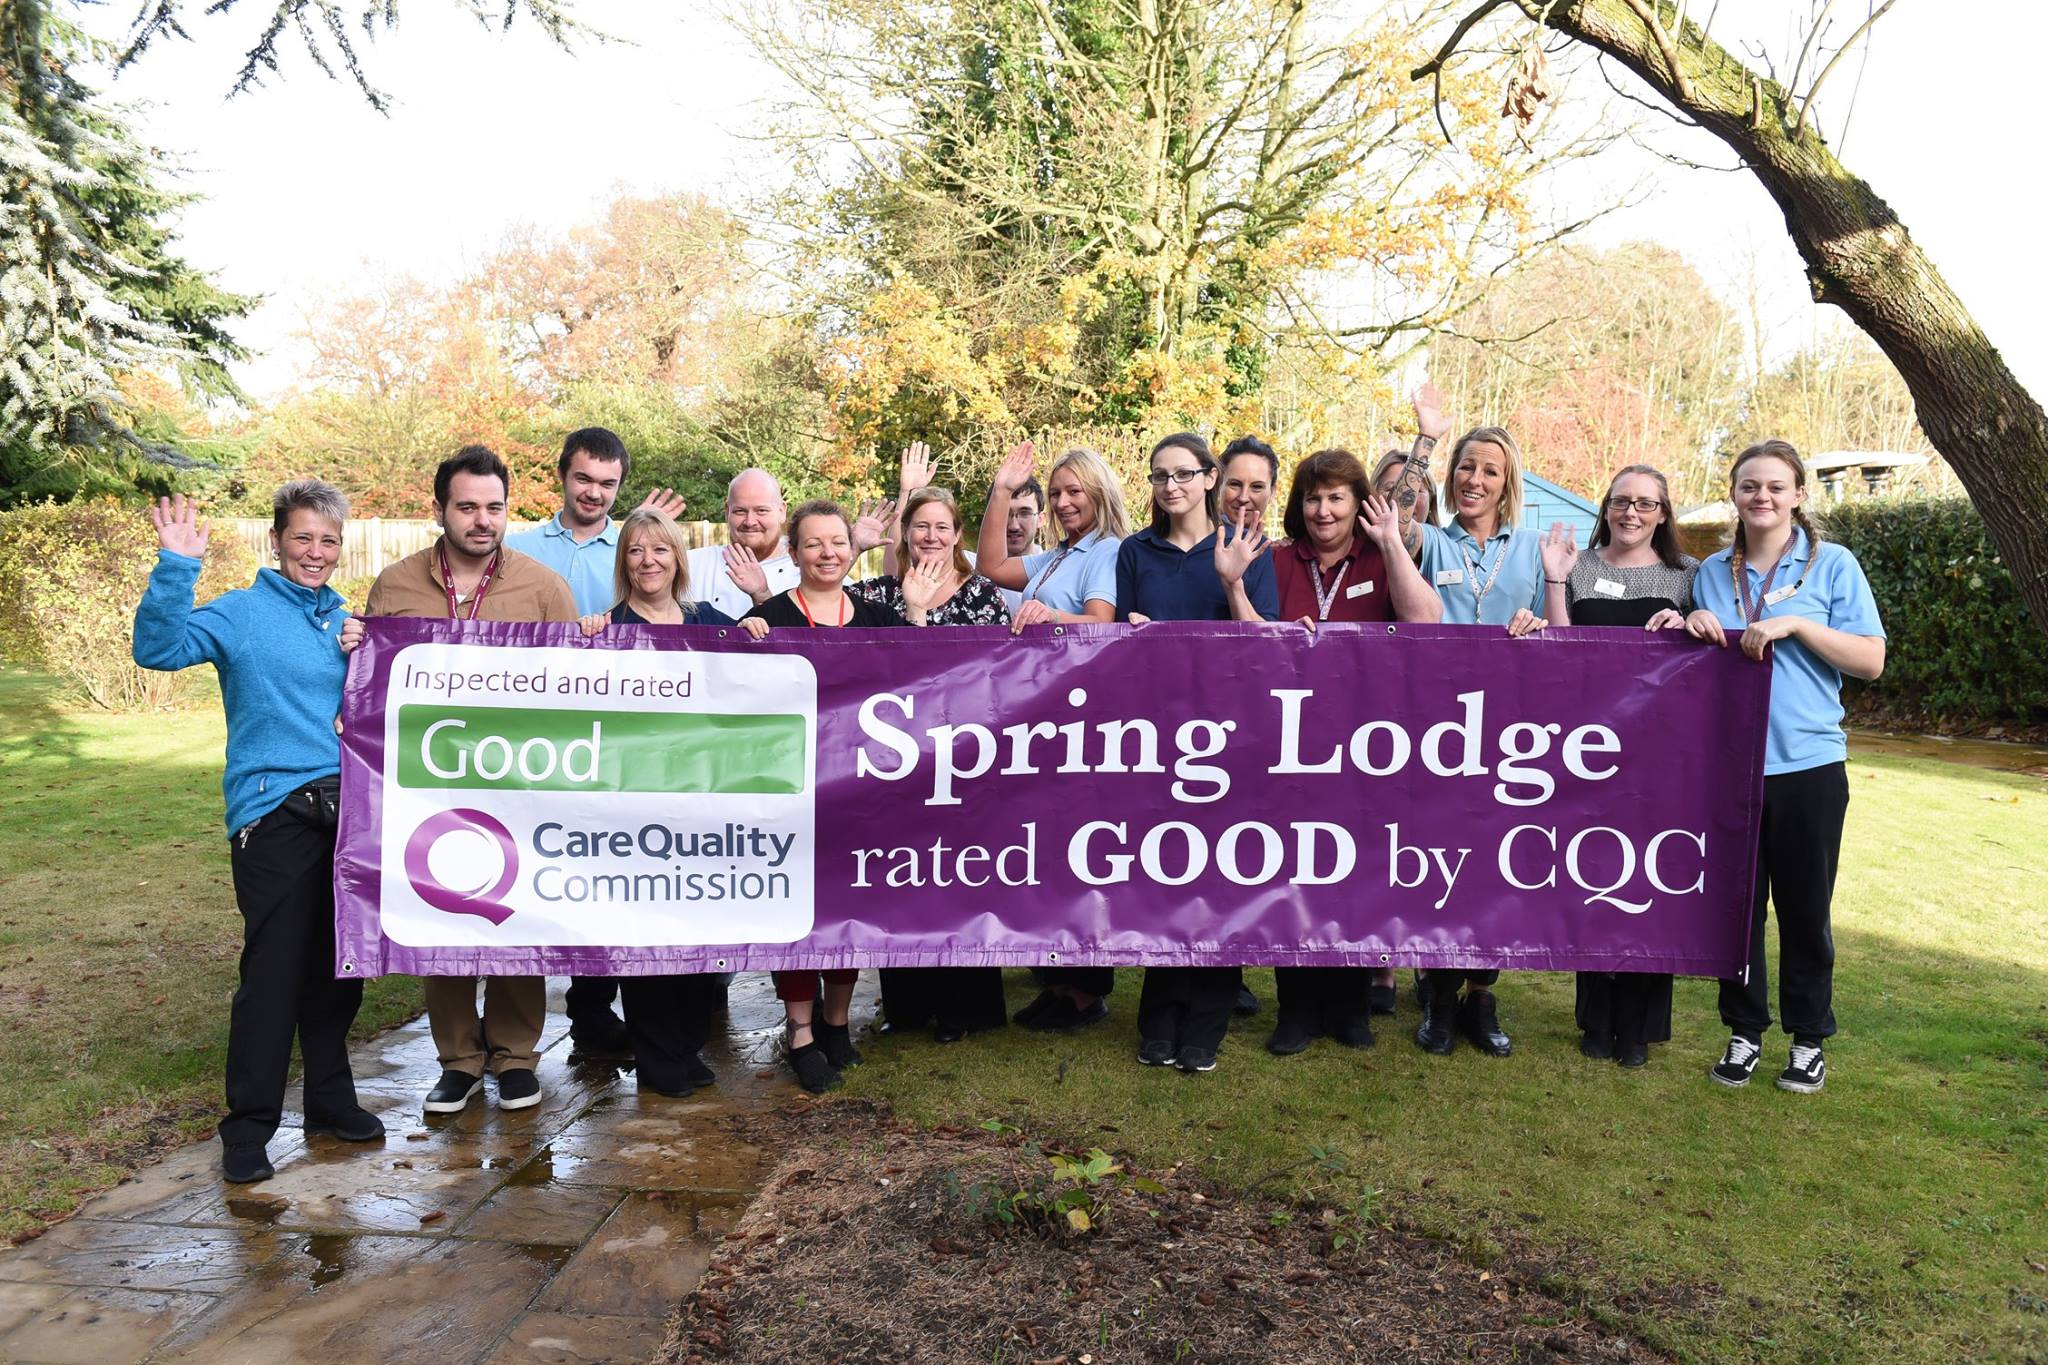 Spring Lodge care homes in Ipswich - Good CQC report